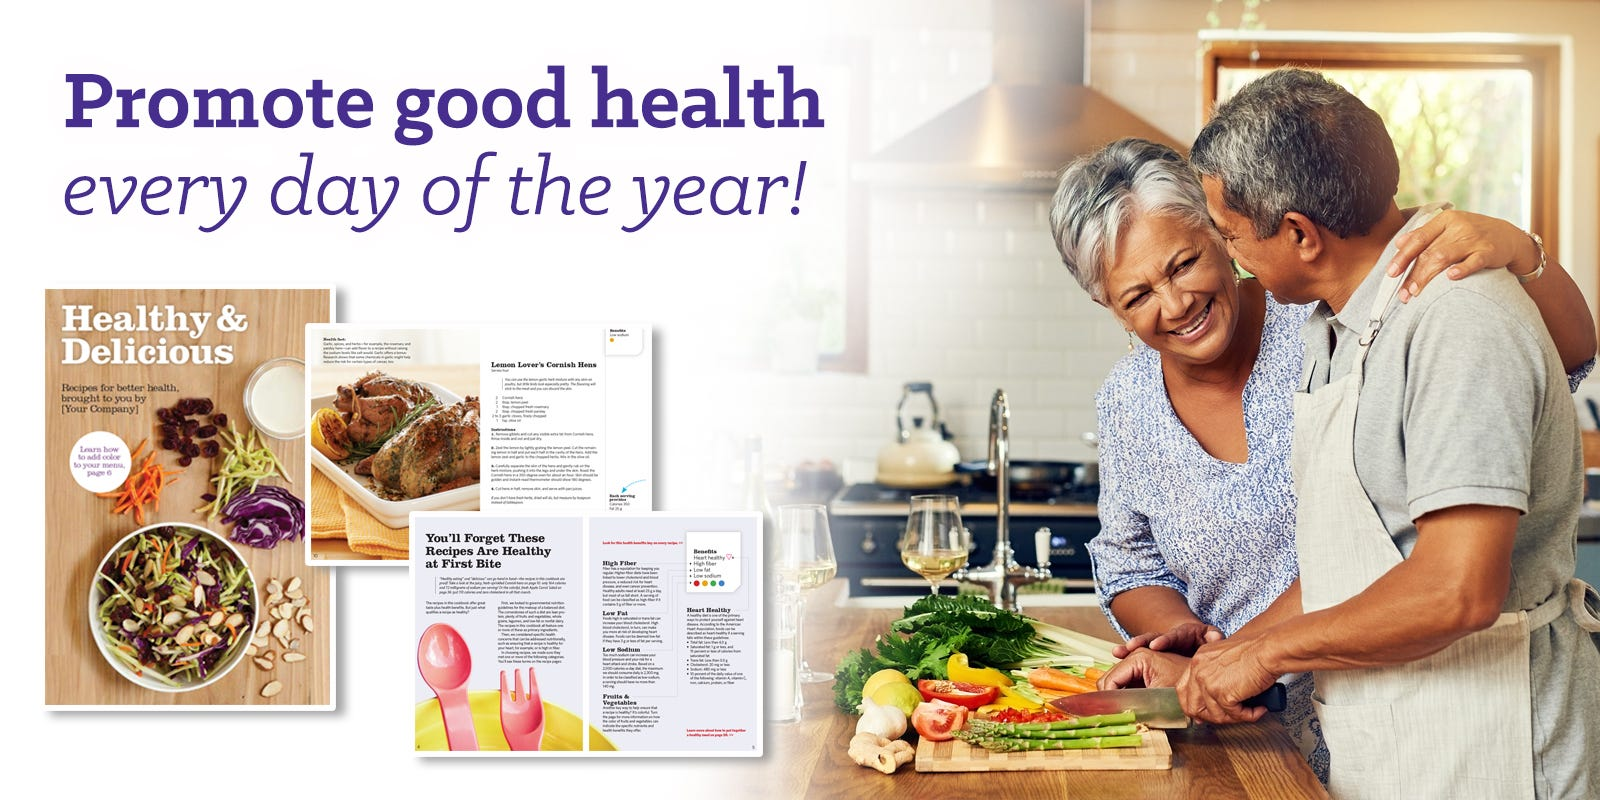 Promote good health every day of the year!